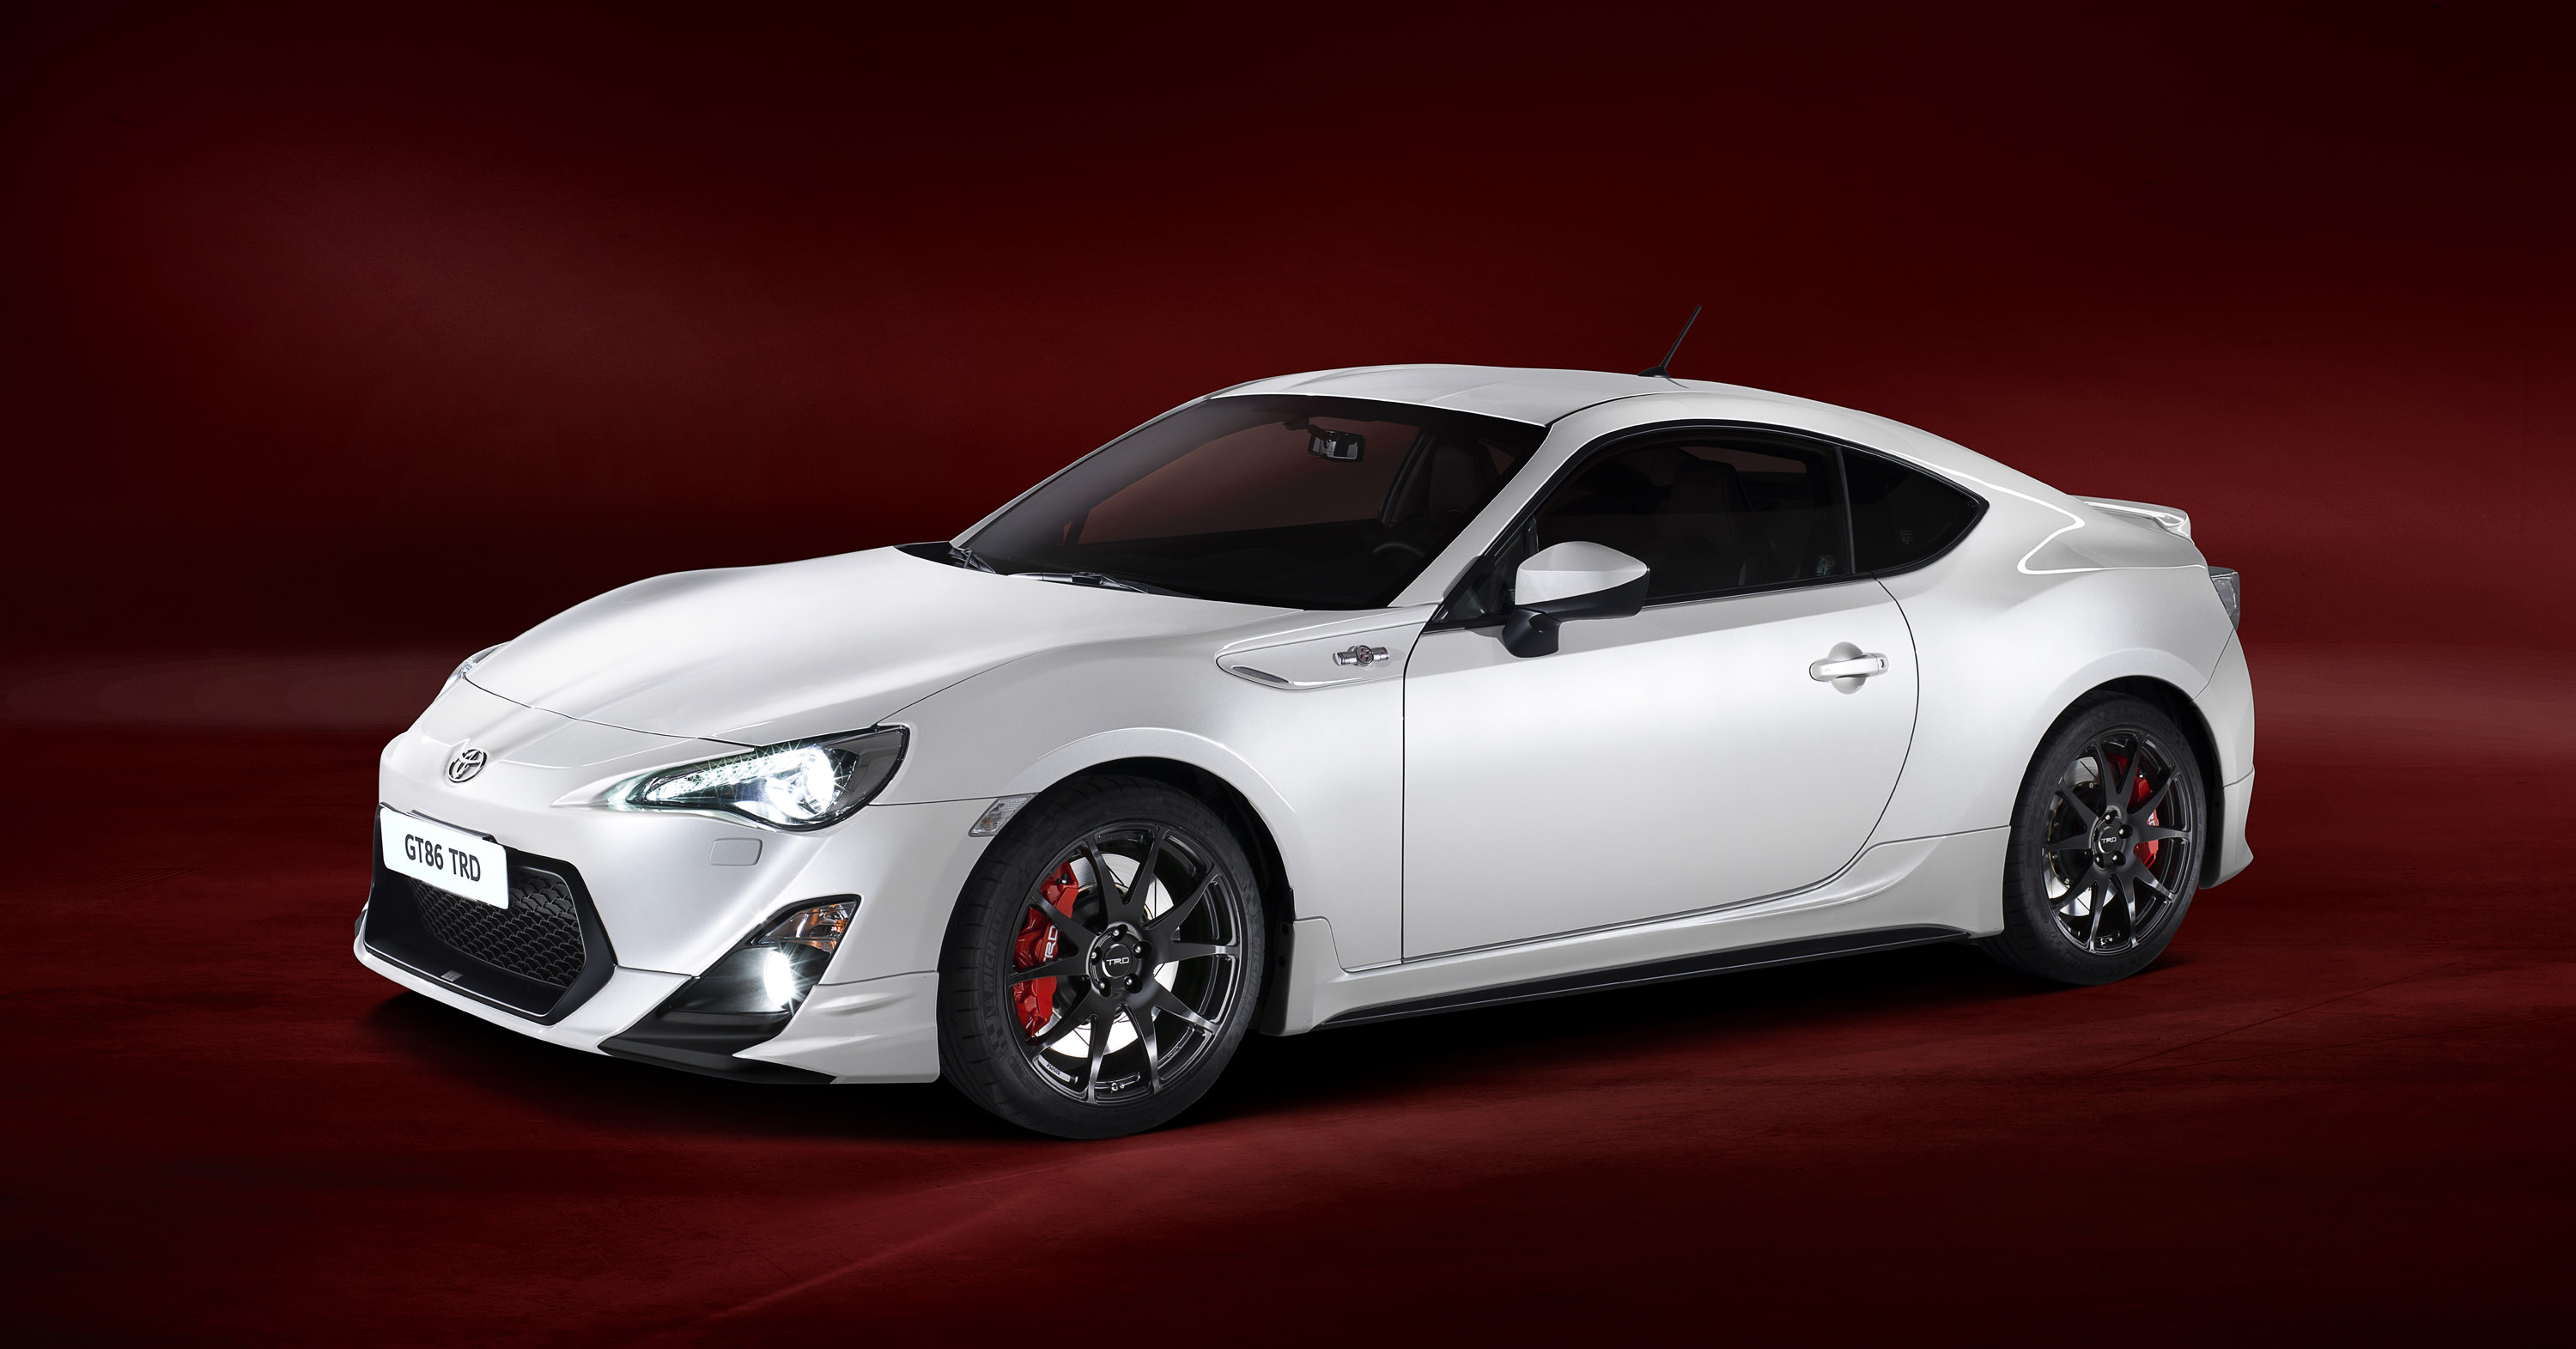 2013 Toyota Gt86 Hd Pictures Carsinvasion Com